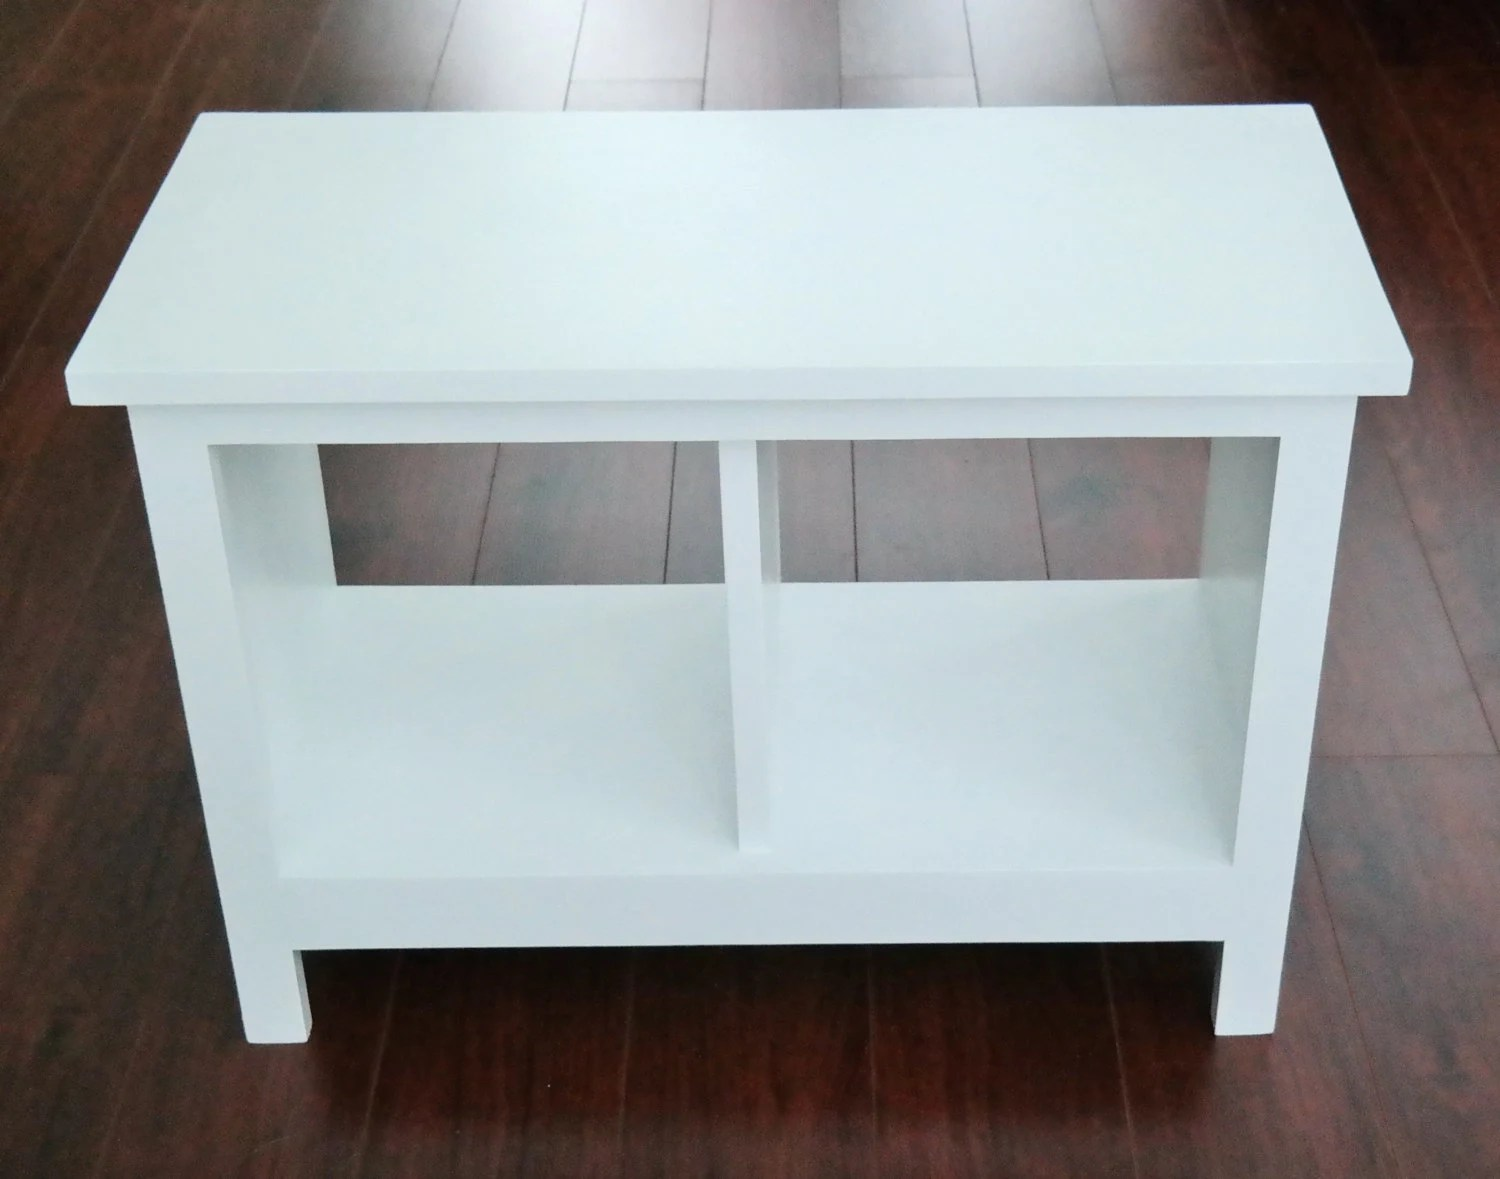 24 Inch Painted Entryway Bench Shoe Cubby Cubby Storage Bench